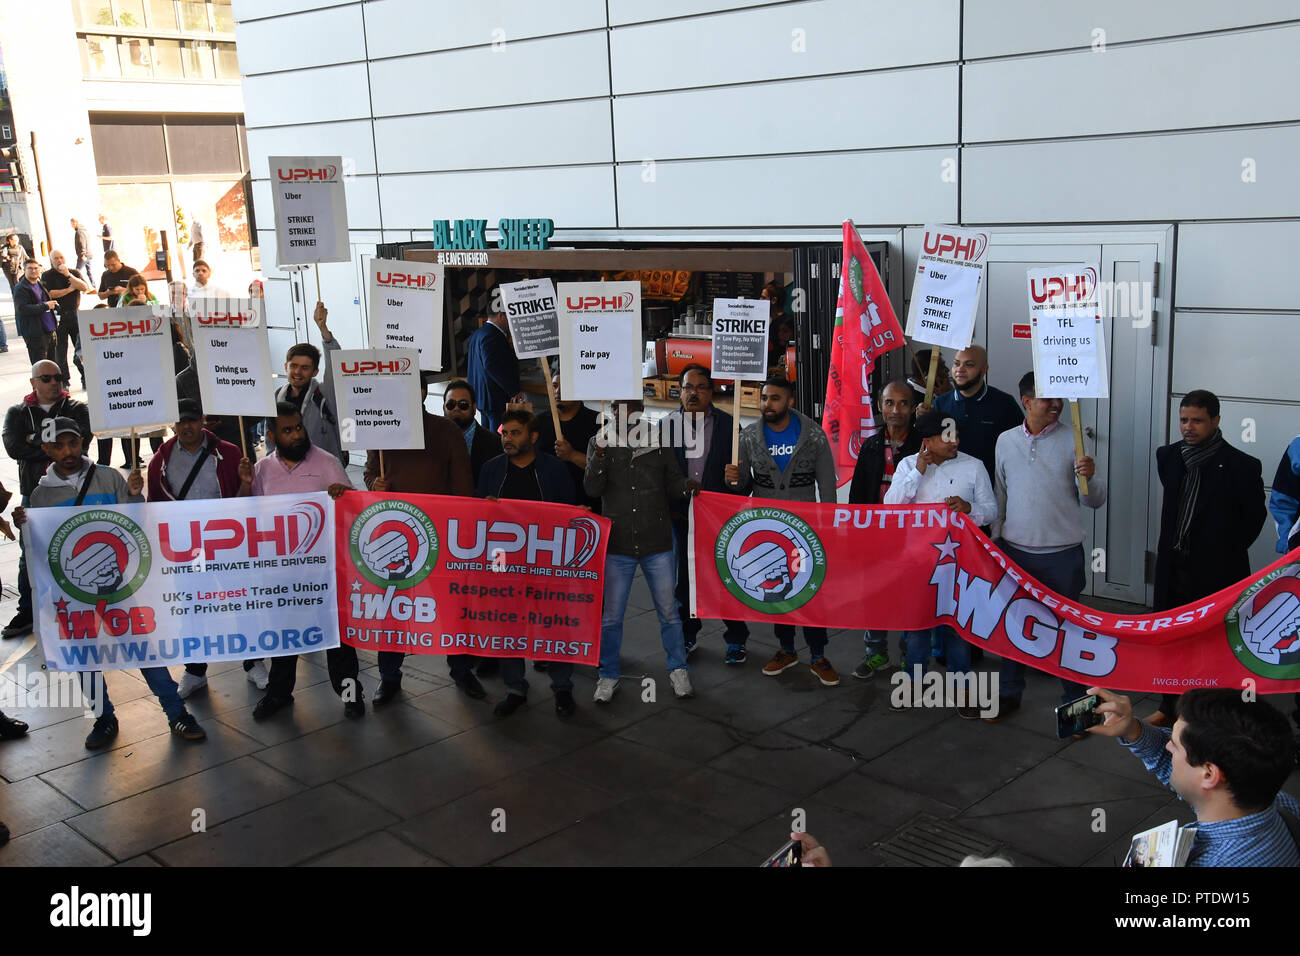 London, UK. 9th October, 2018. Uber driver strike! demand a minimun wages outside Uber offices, Aldgate Tower, London, UK. 9 October 2018. Credit: Picture Capital/Alamy Live News Stock Photo